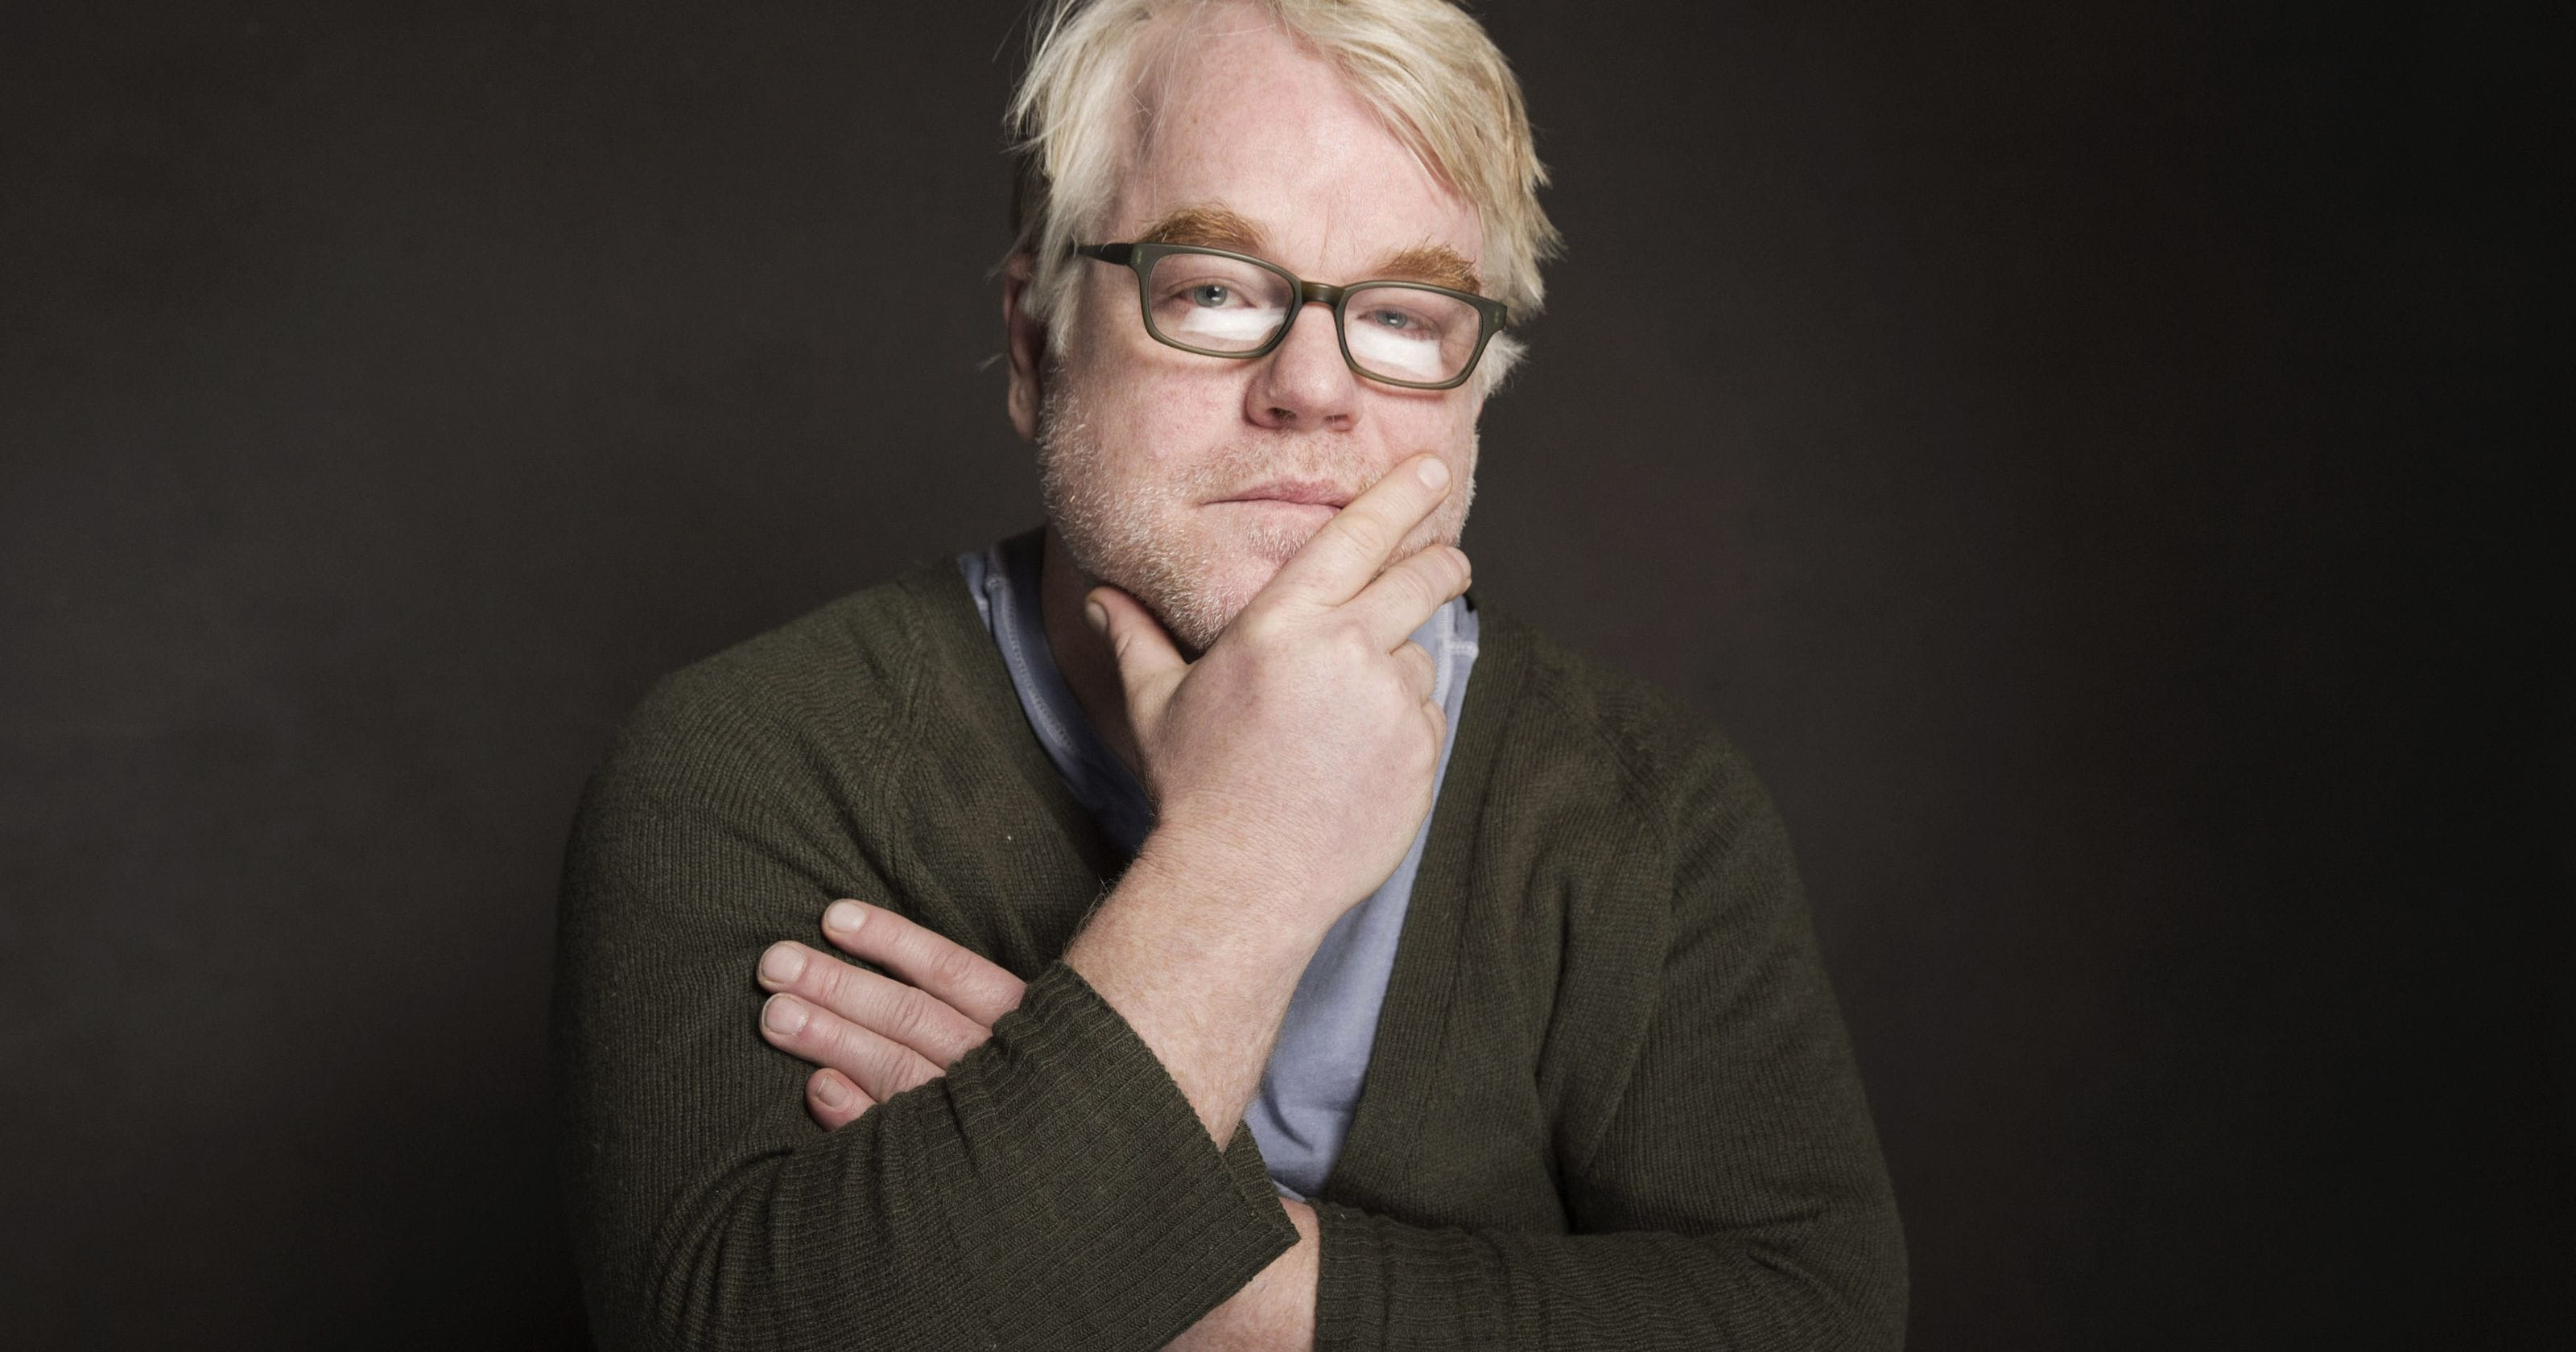 Philip Seymour Hoffman Background